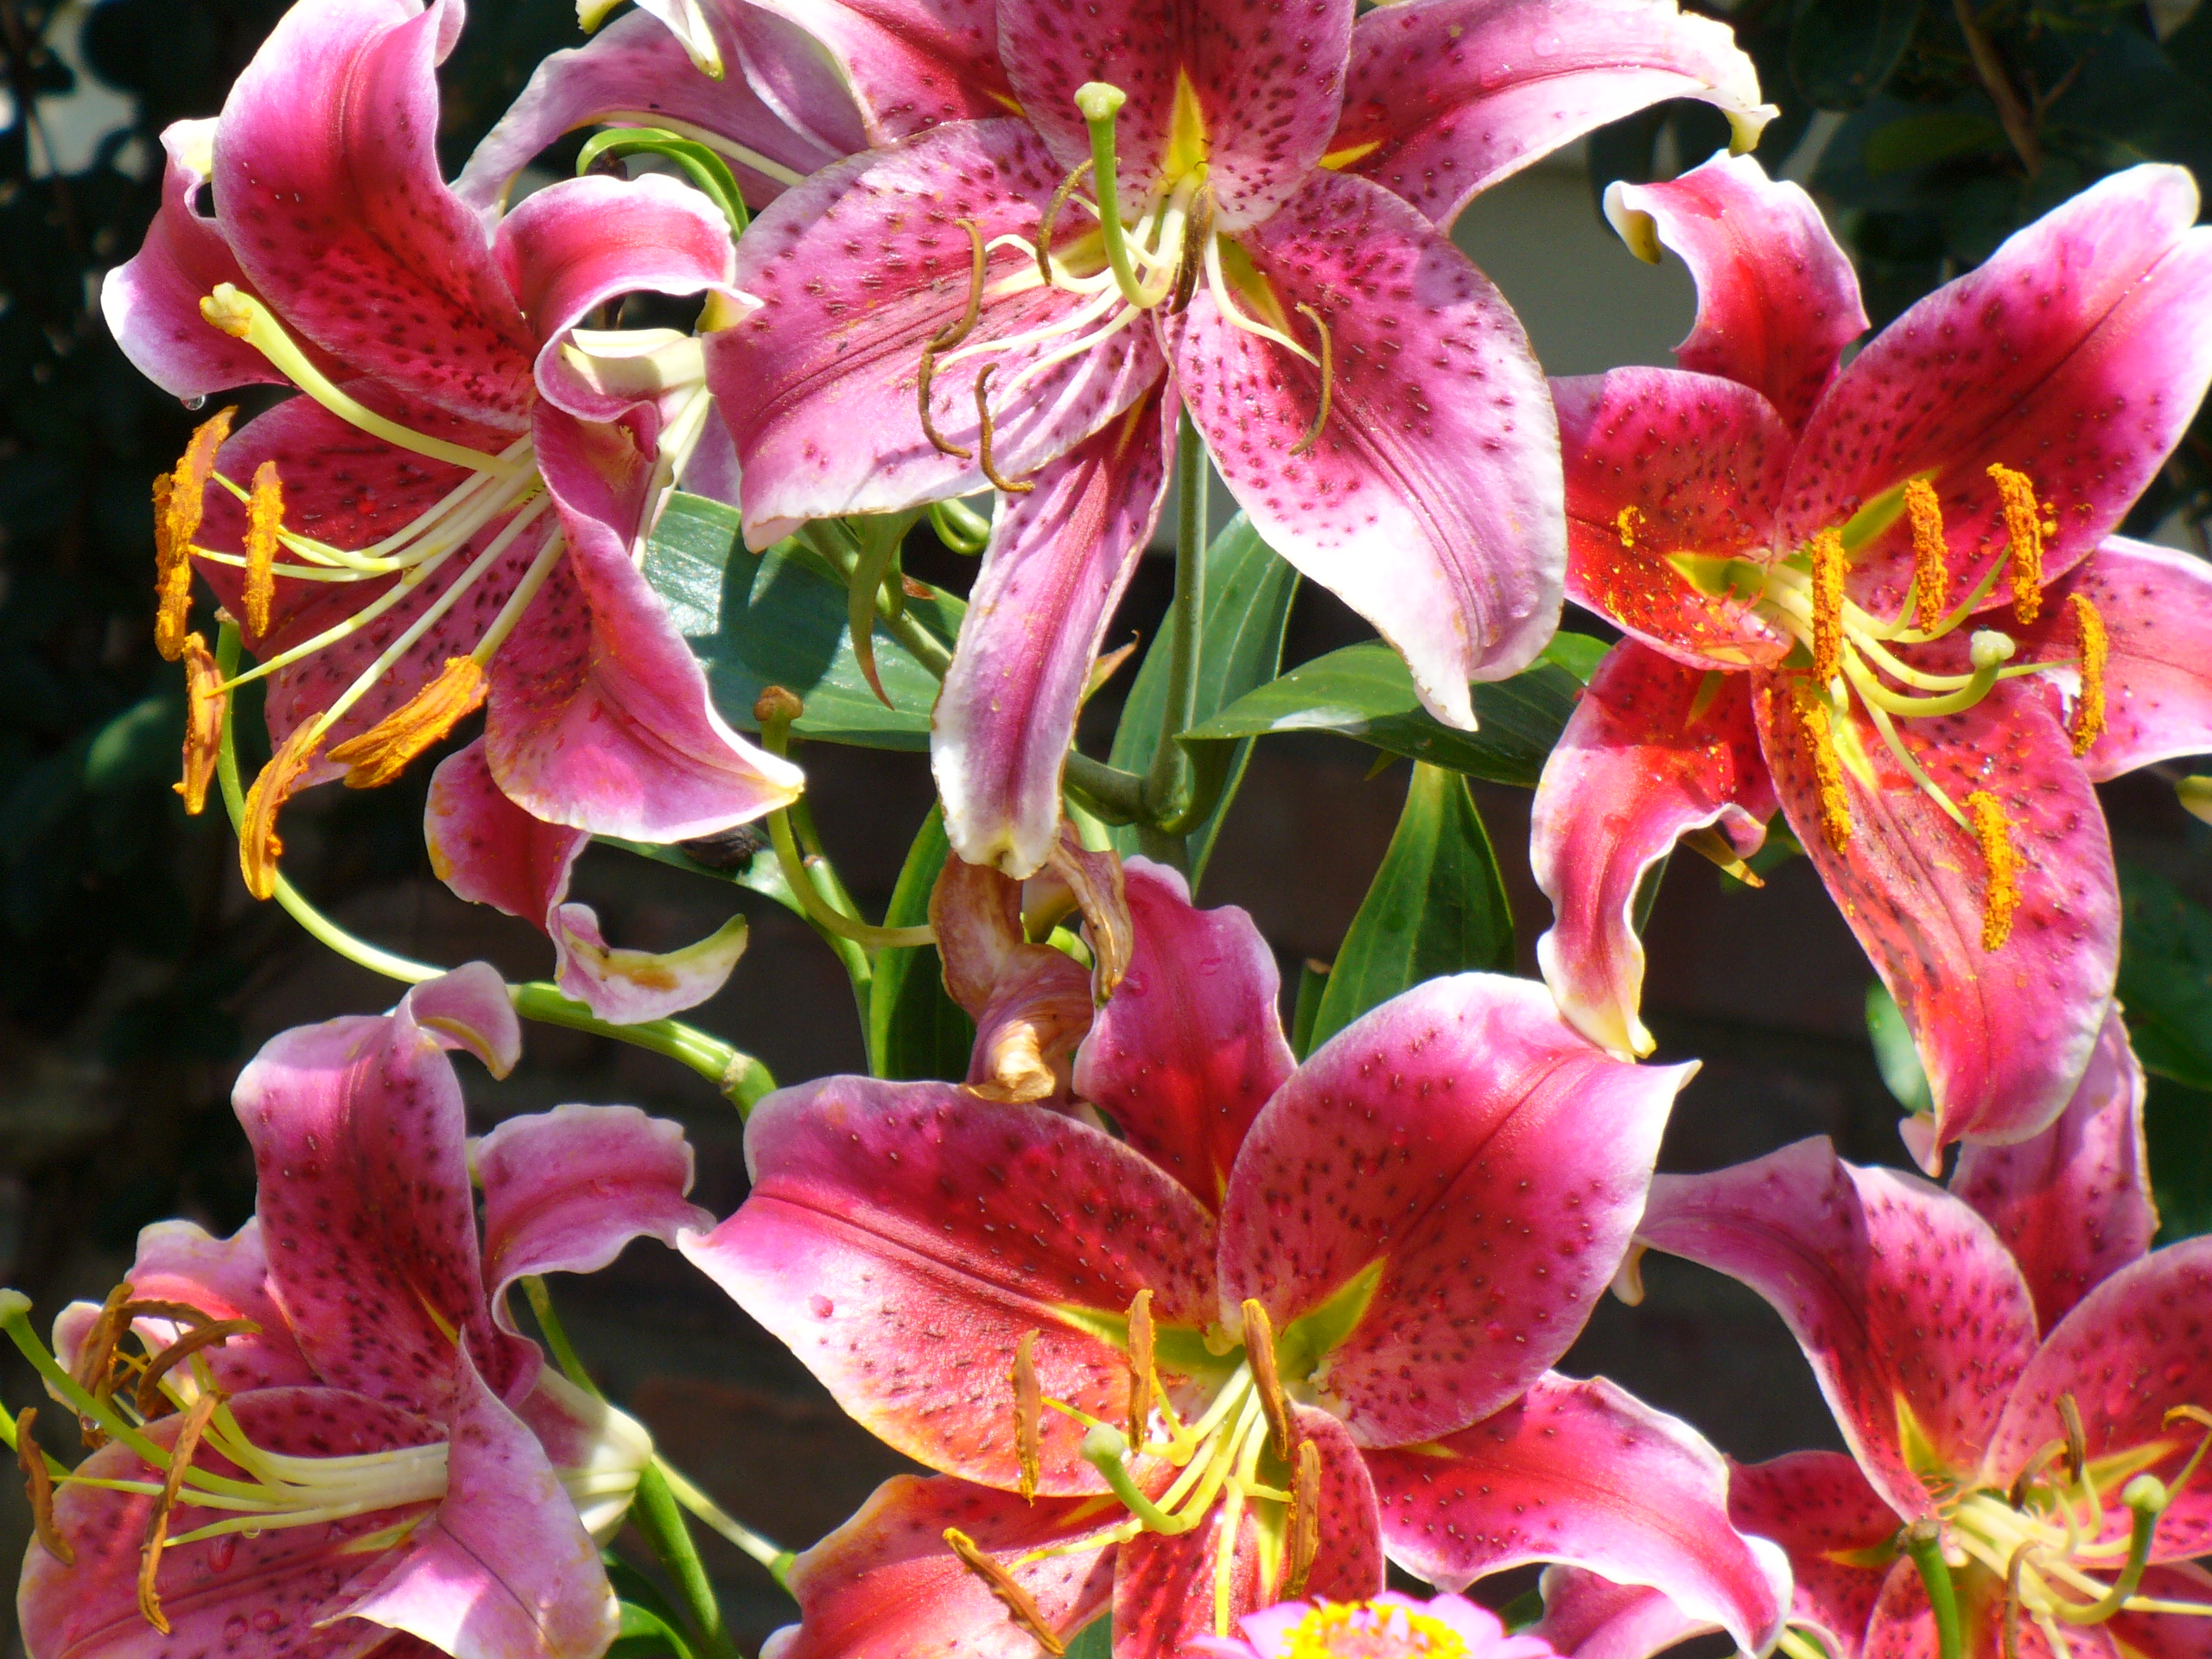 Interesting facts about stargazer lilies flower pressflower press stargazer lily flower facts izmirmasajfo